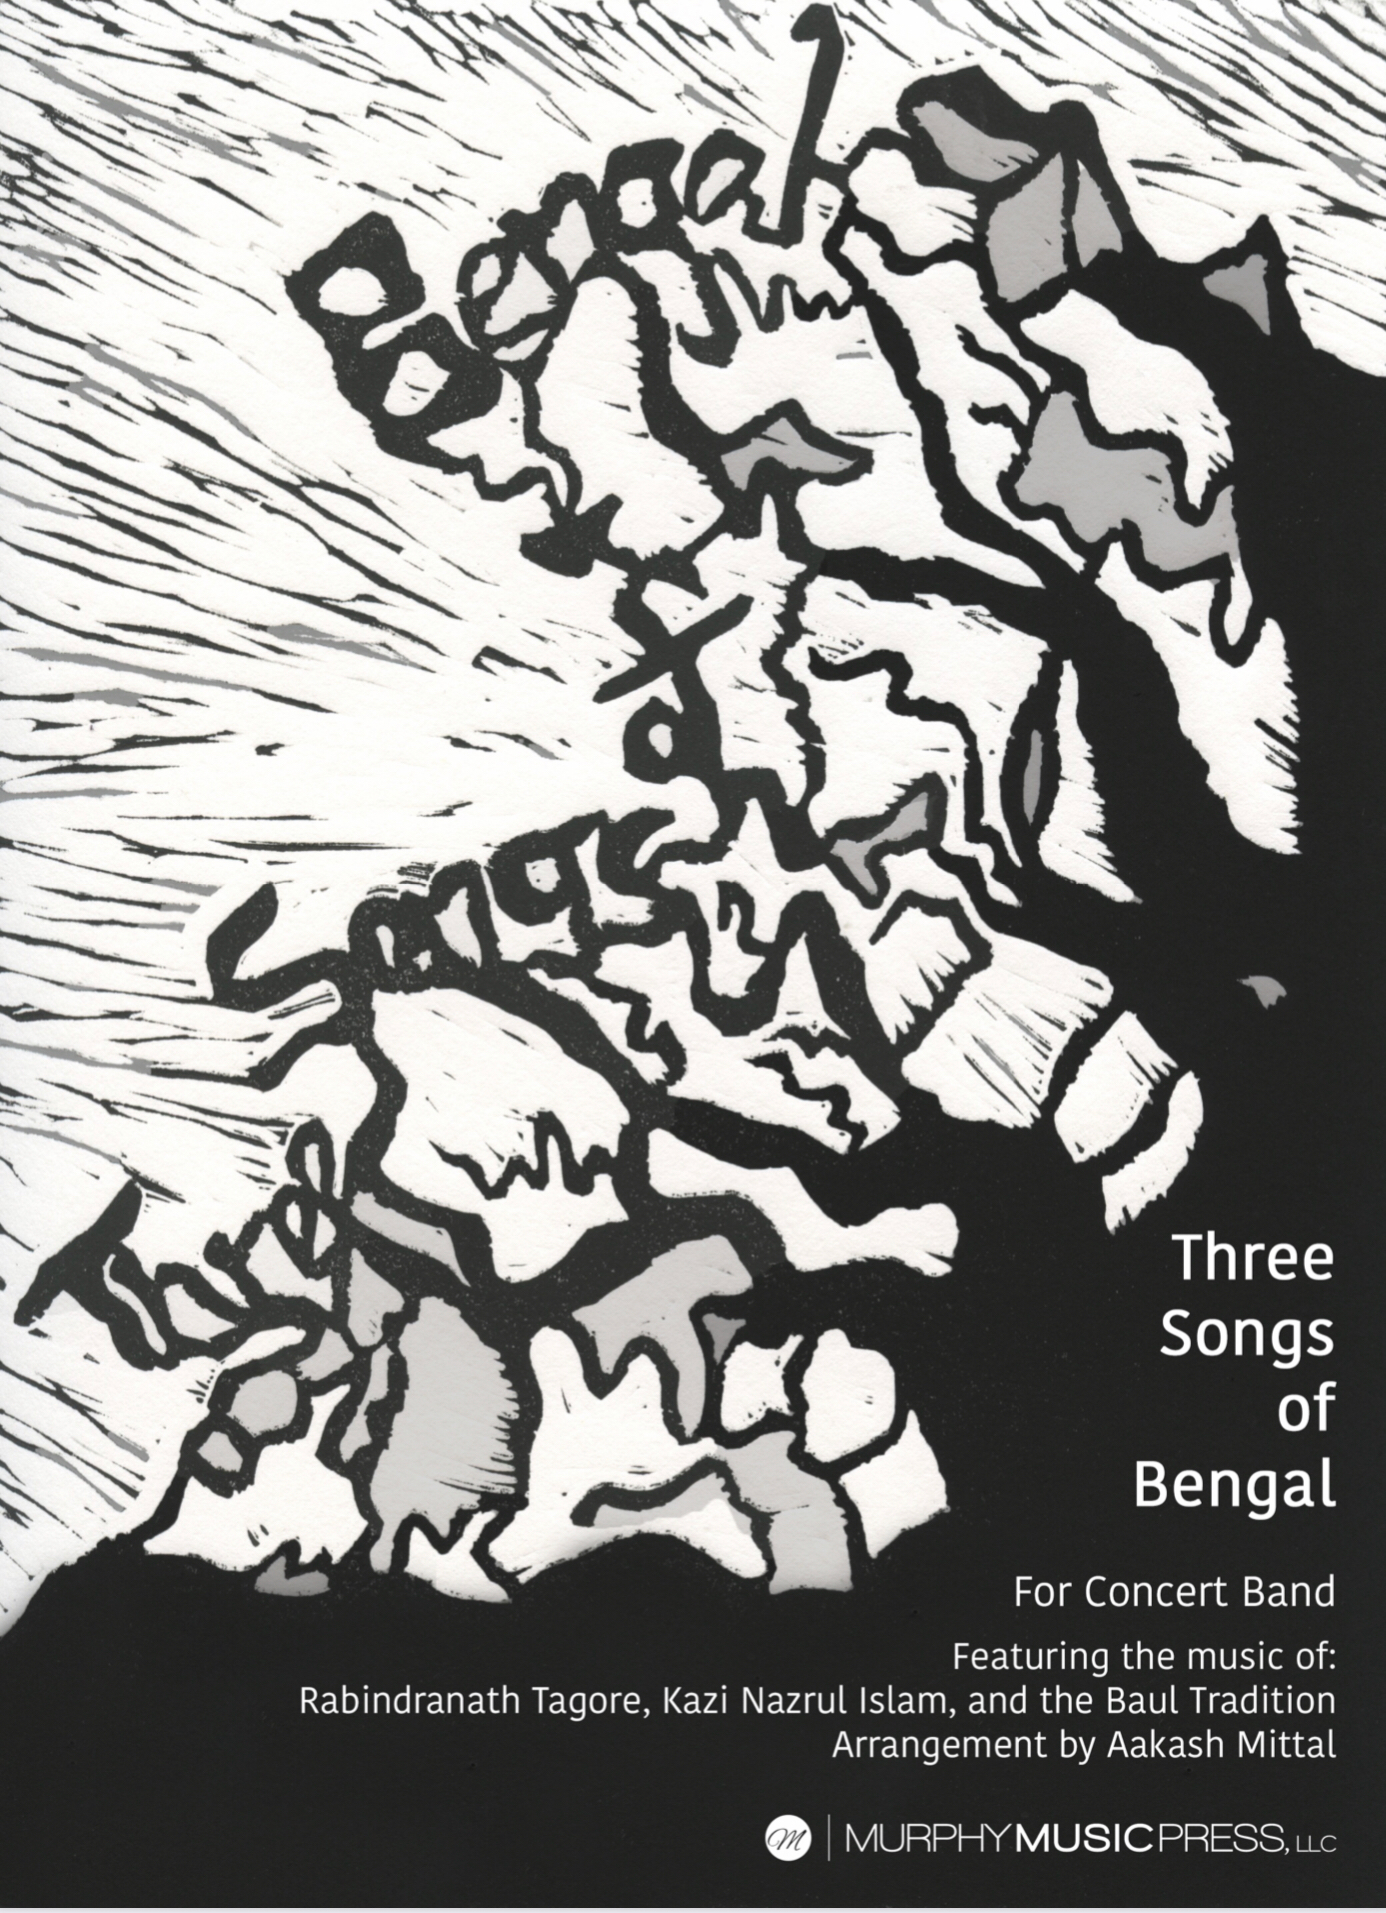 Three Songs Of Bengal by Aakash Mittal